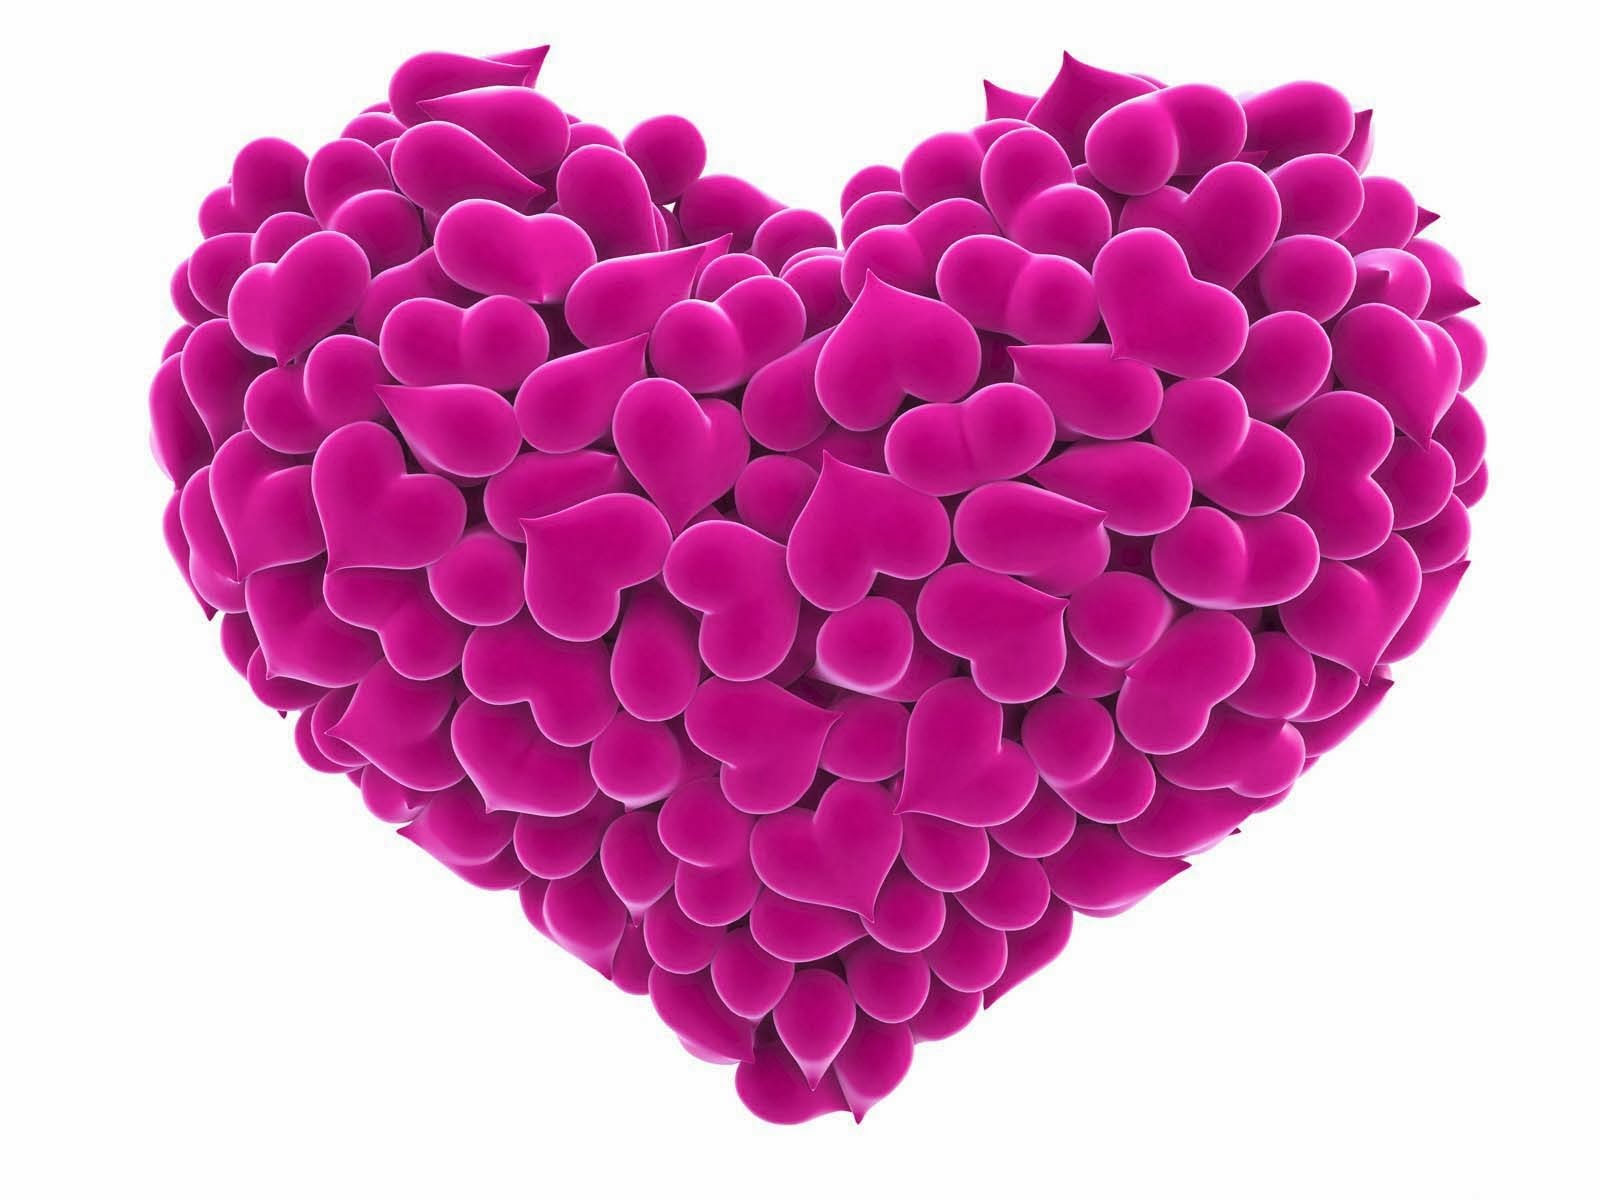 heart-love-pink-color-wallpaper